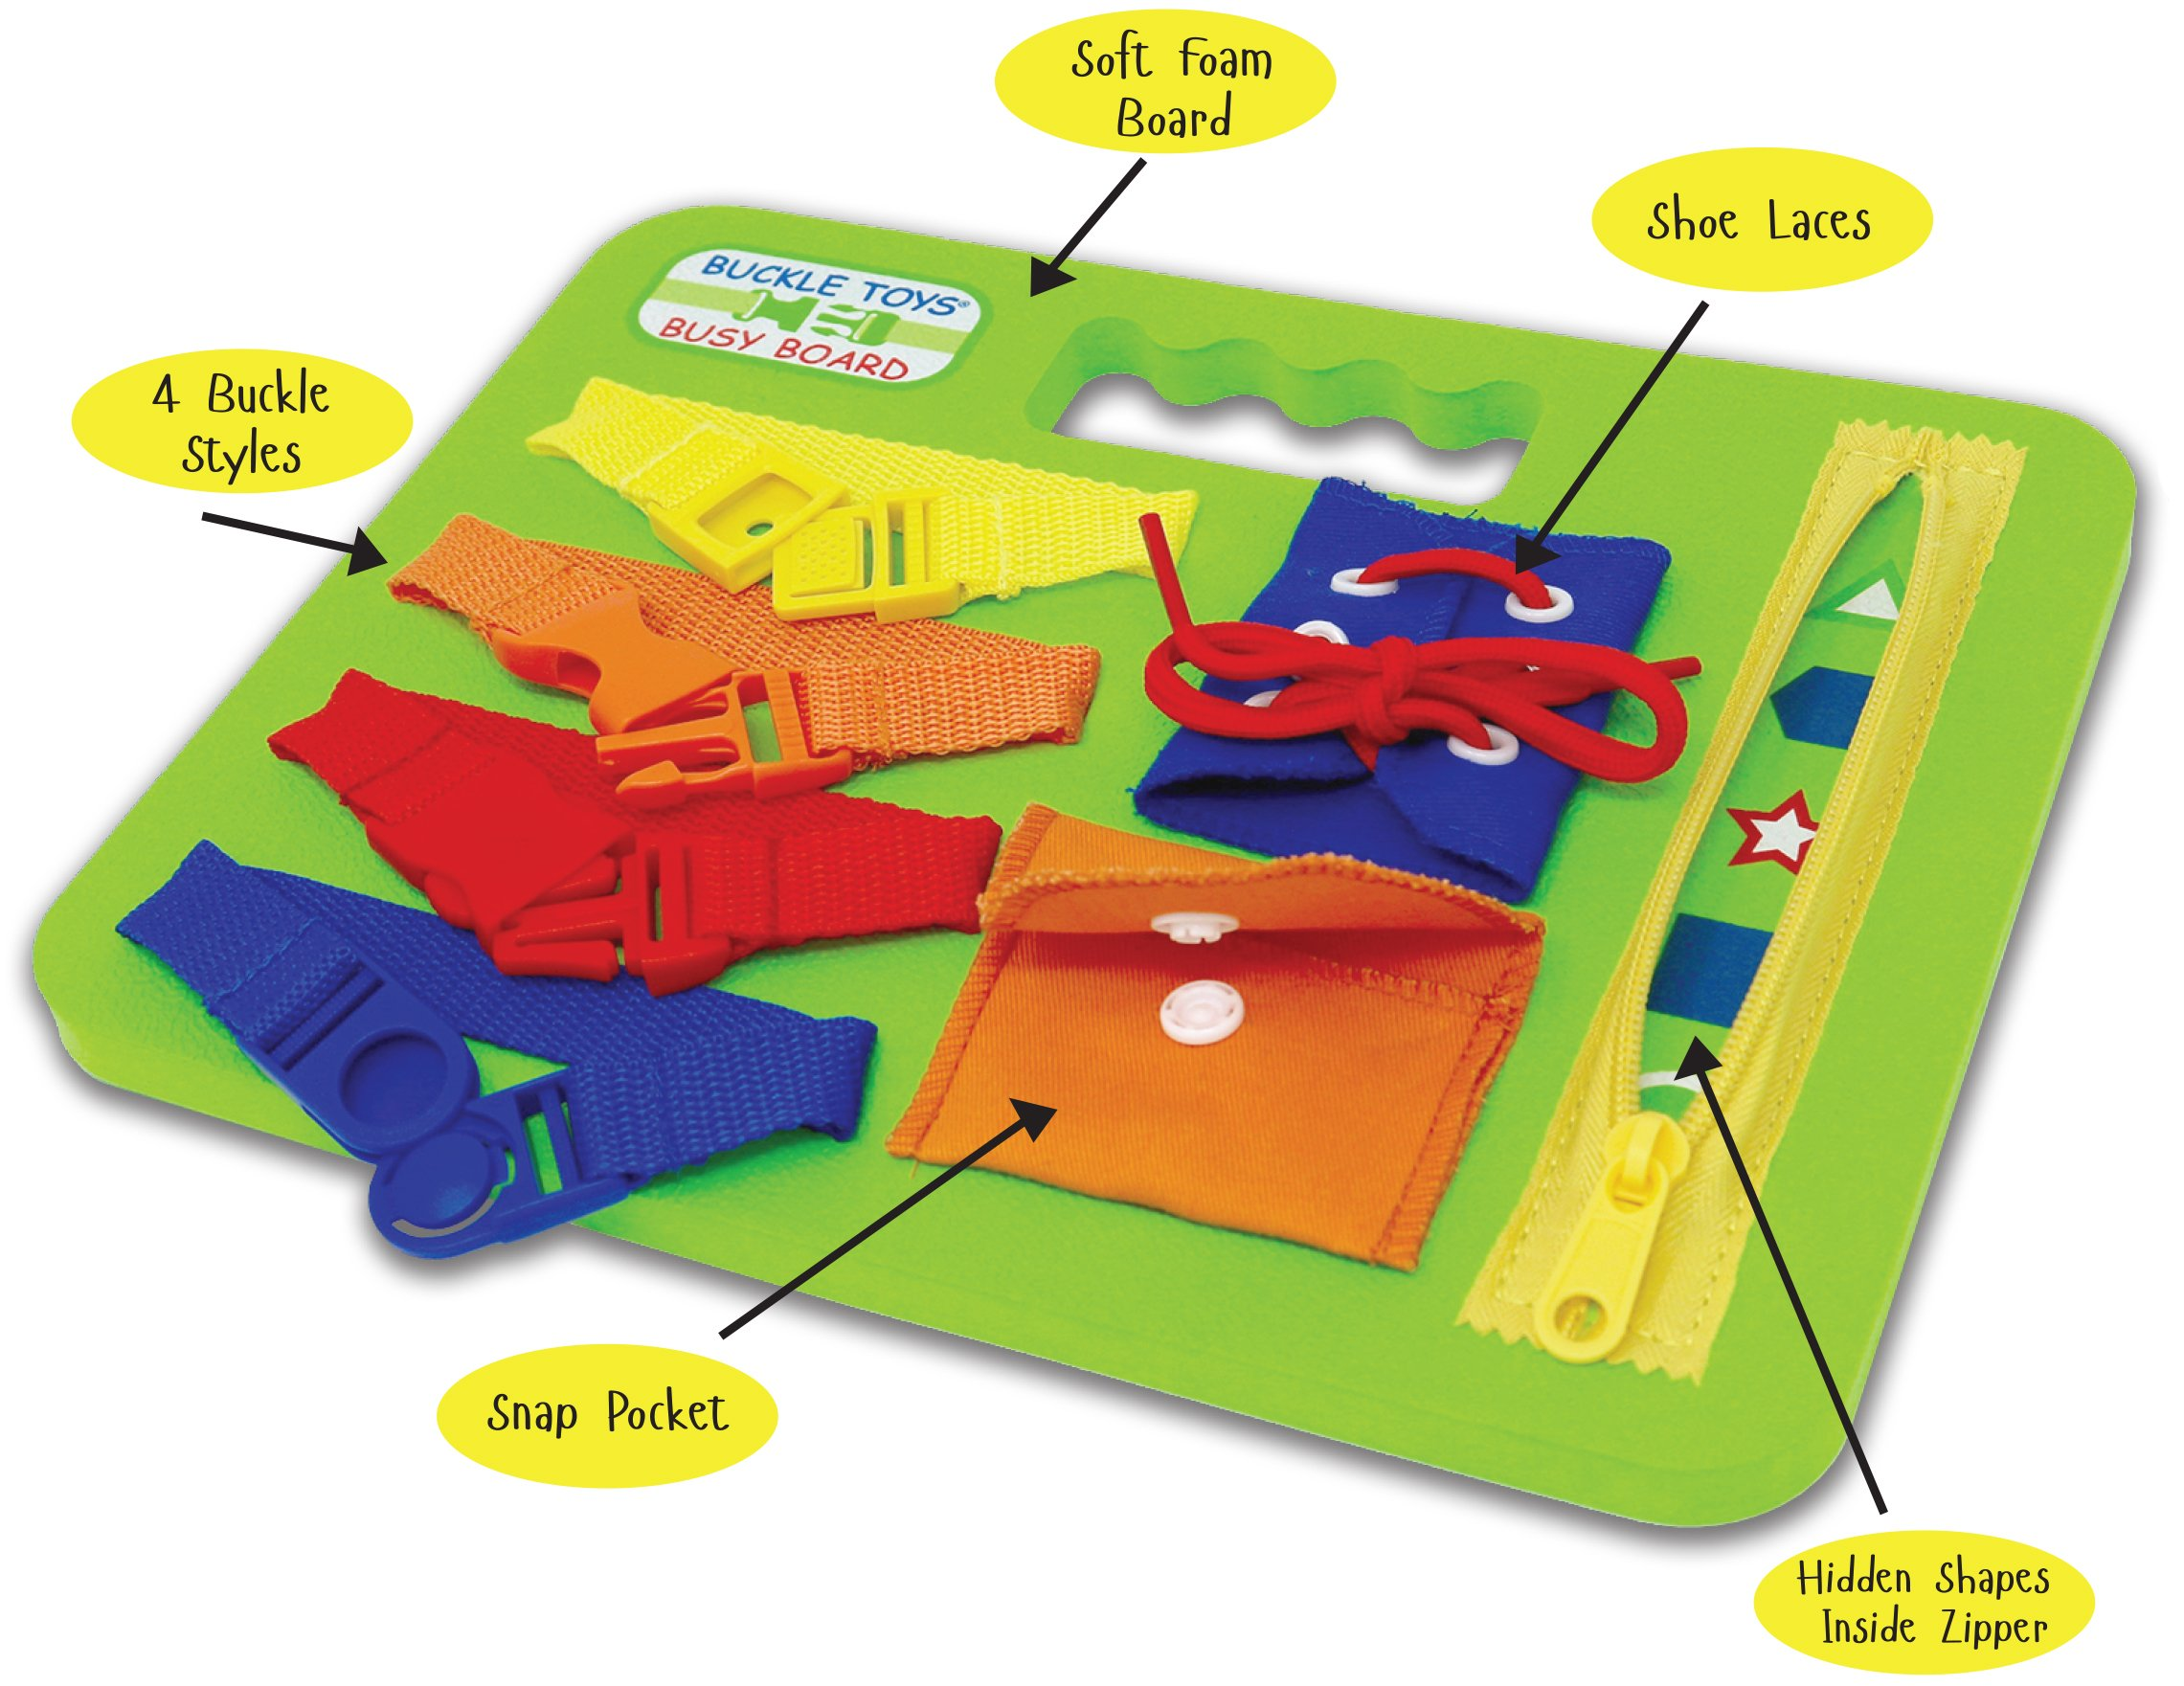 Buckle Toys - Busy Board by Buckle Toys